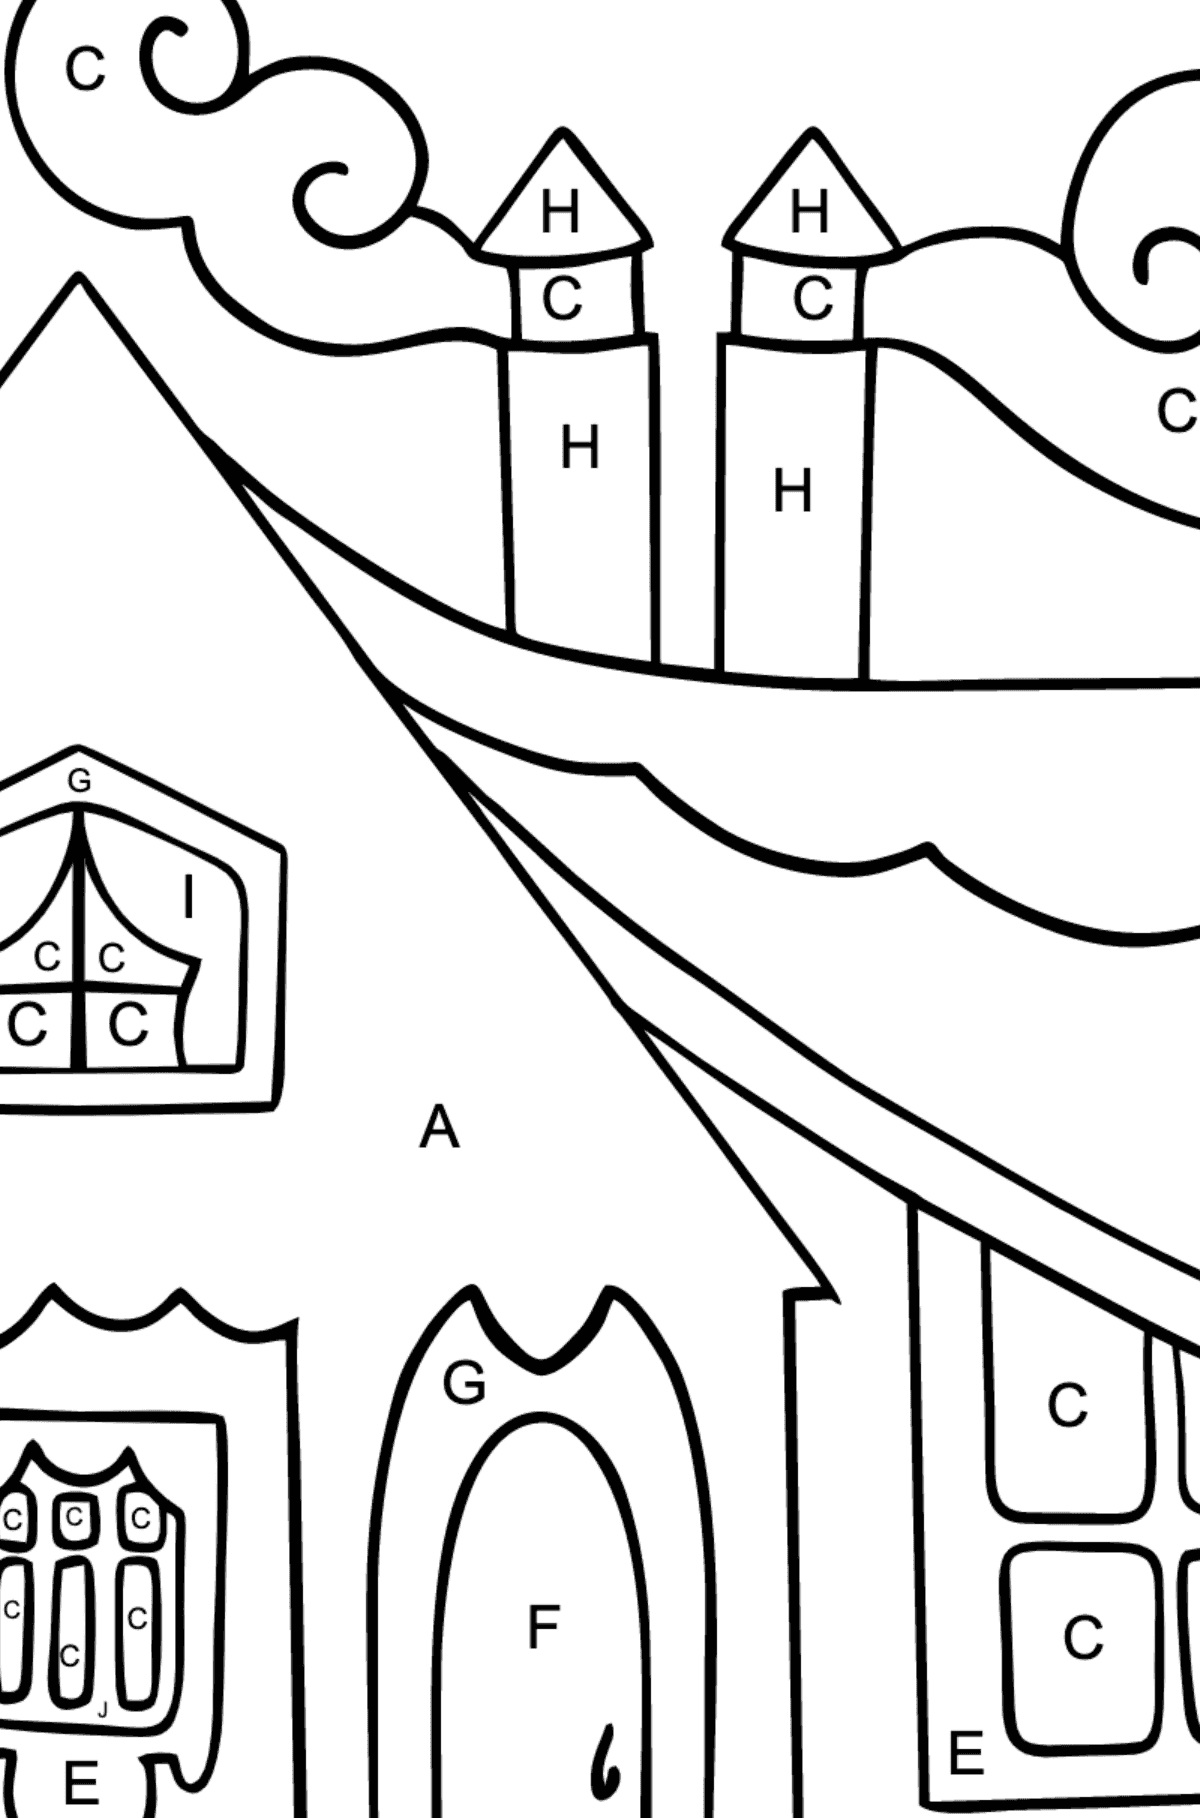 Simple Coloring Page - A Tiny House for Children  - Color by Letters